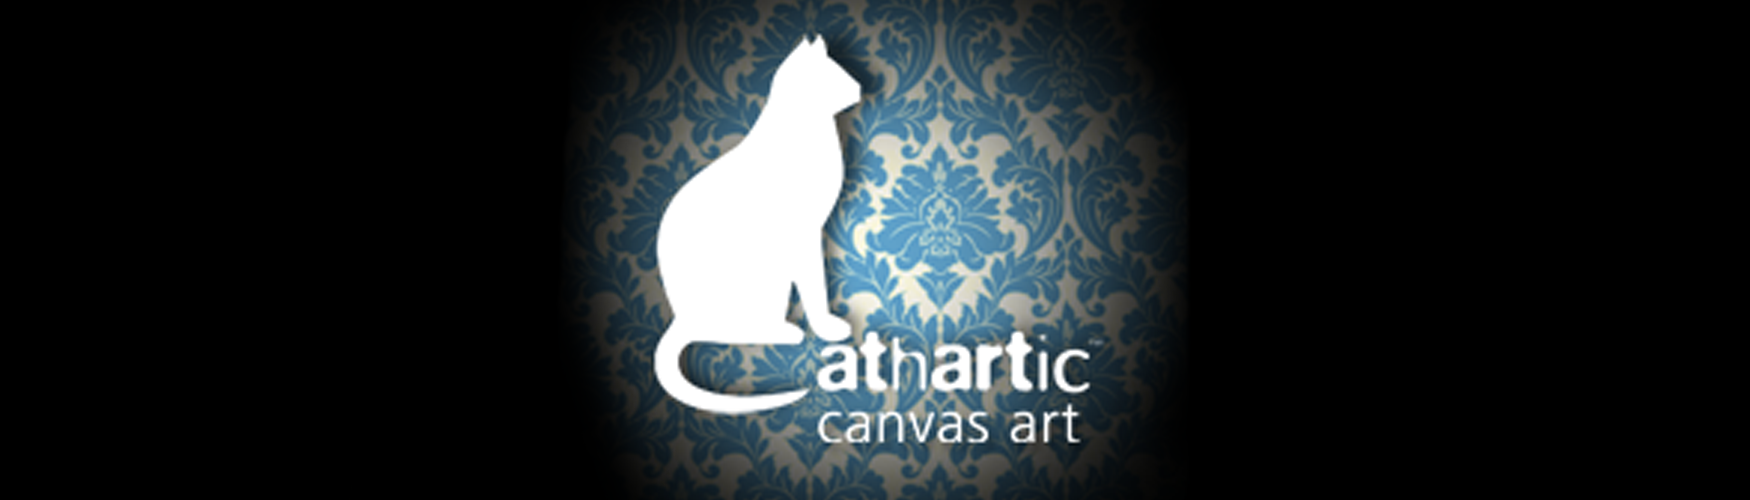 banner-cathartic-canvas